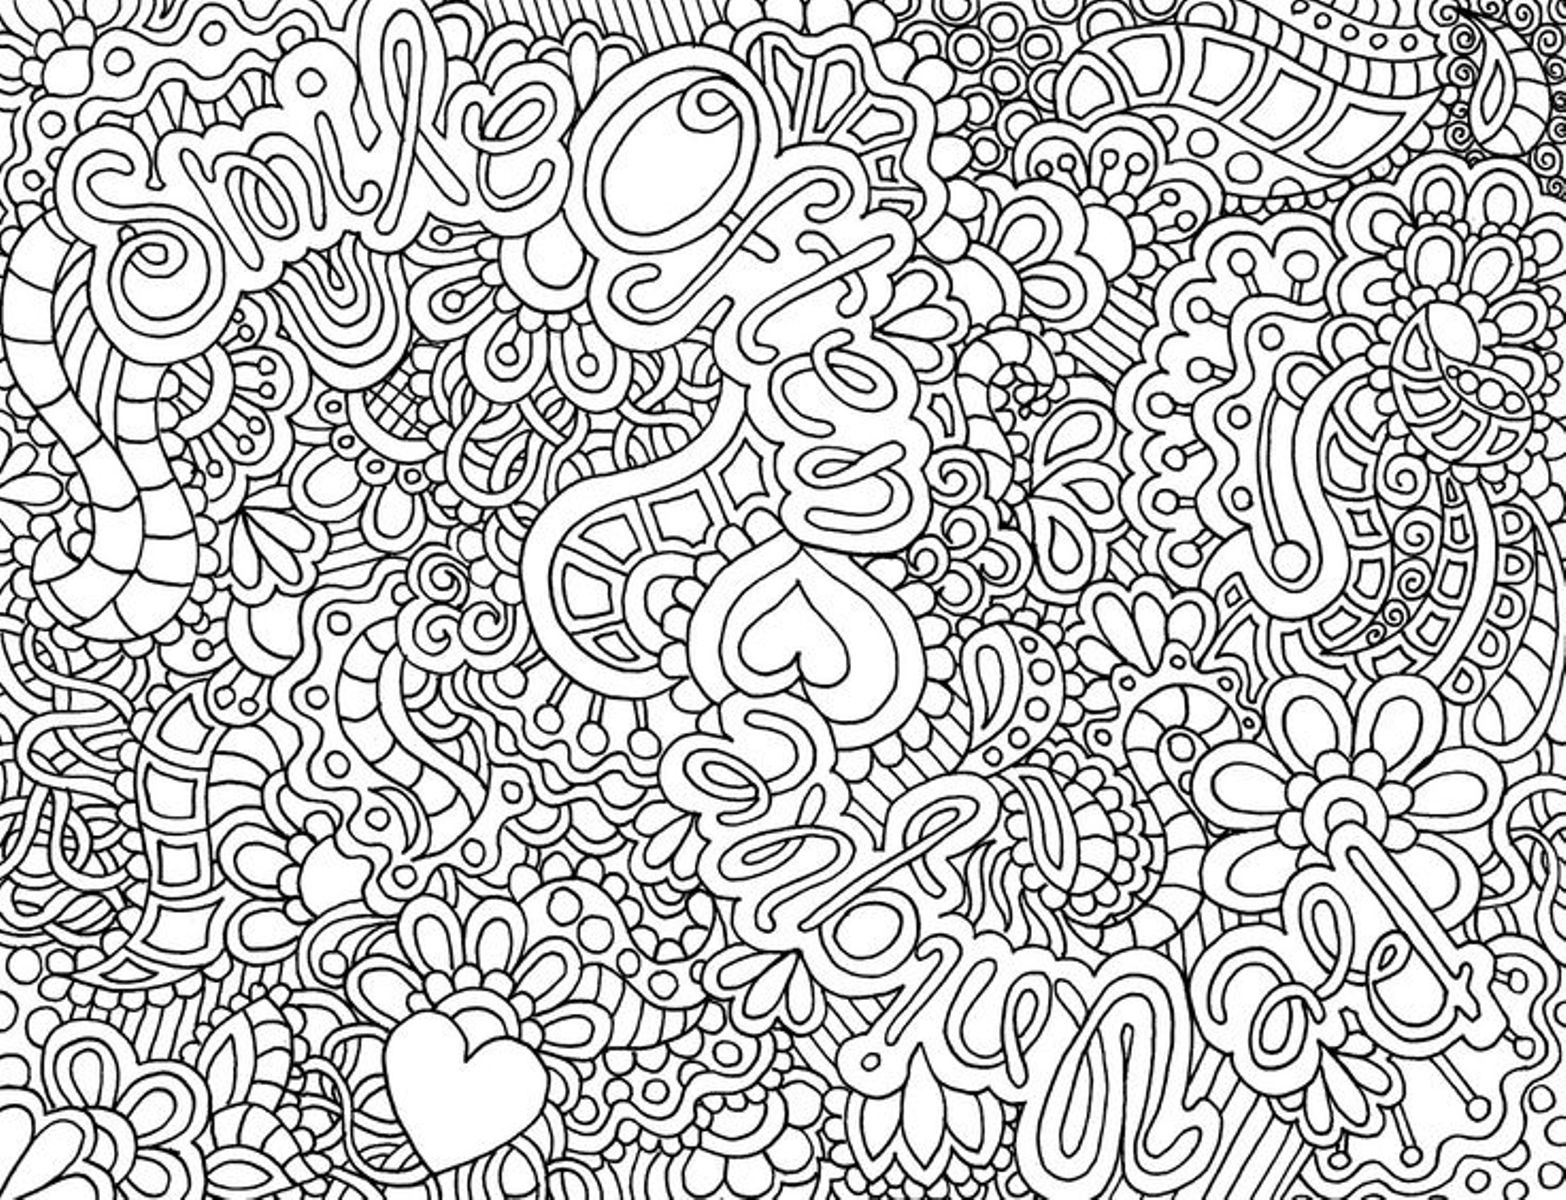 Coloring Pages for Girls Printable | Free Coloring Sheets